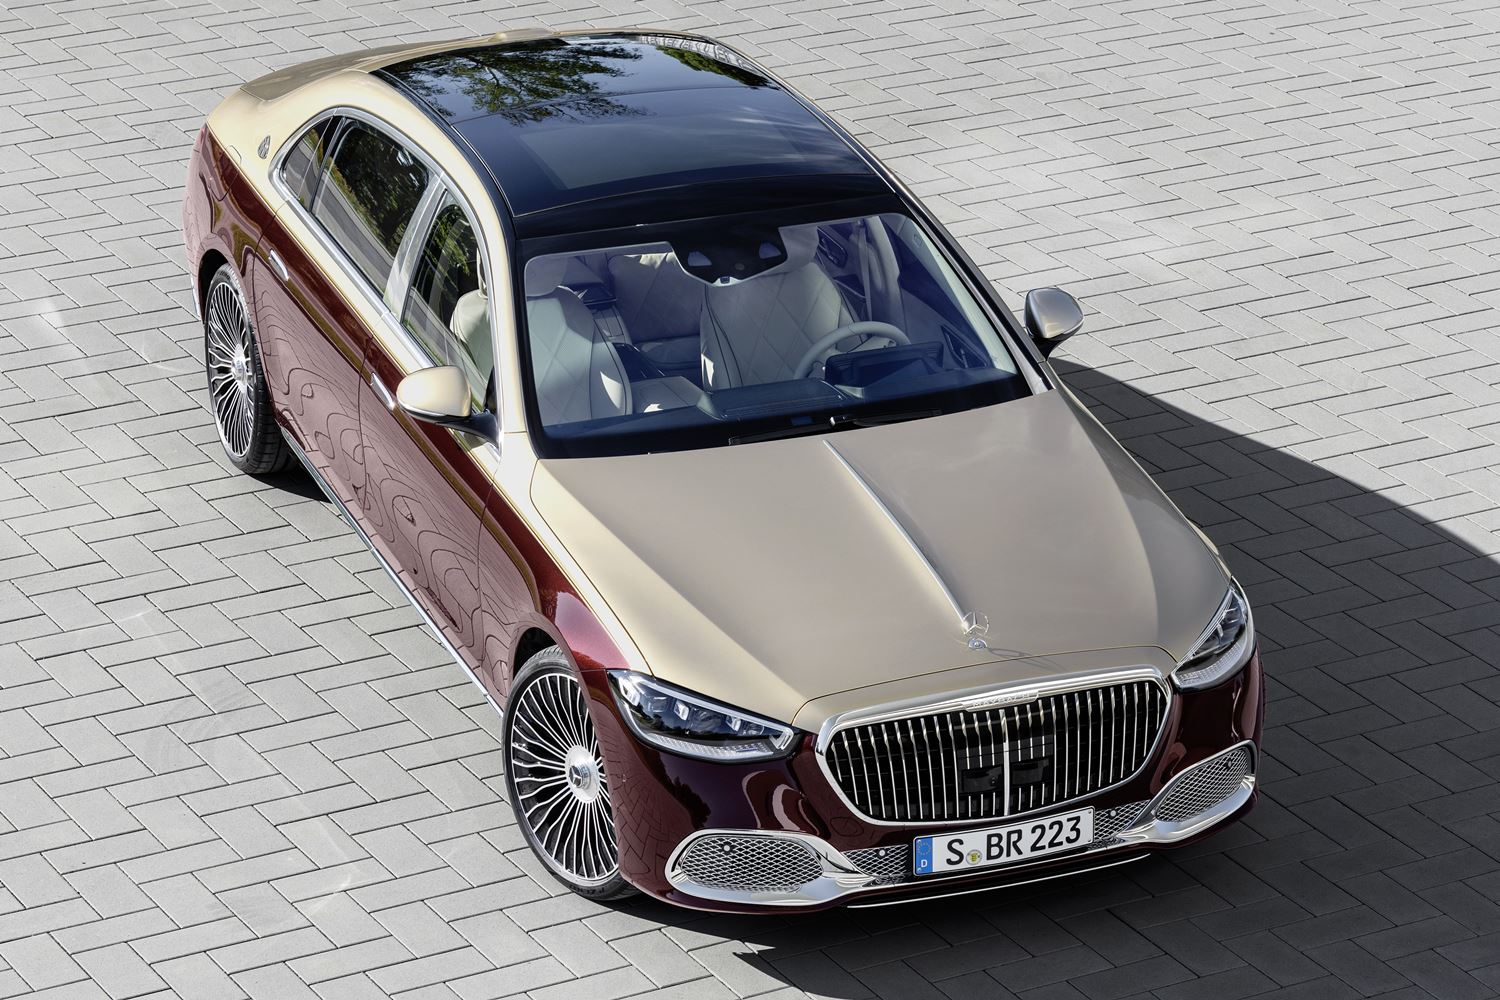 Mercedes Maybach S-Klasse Z223